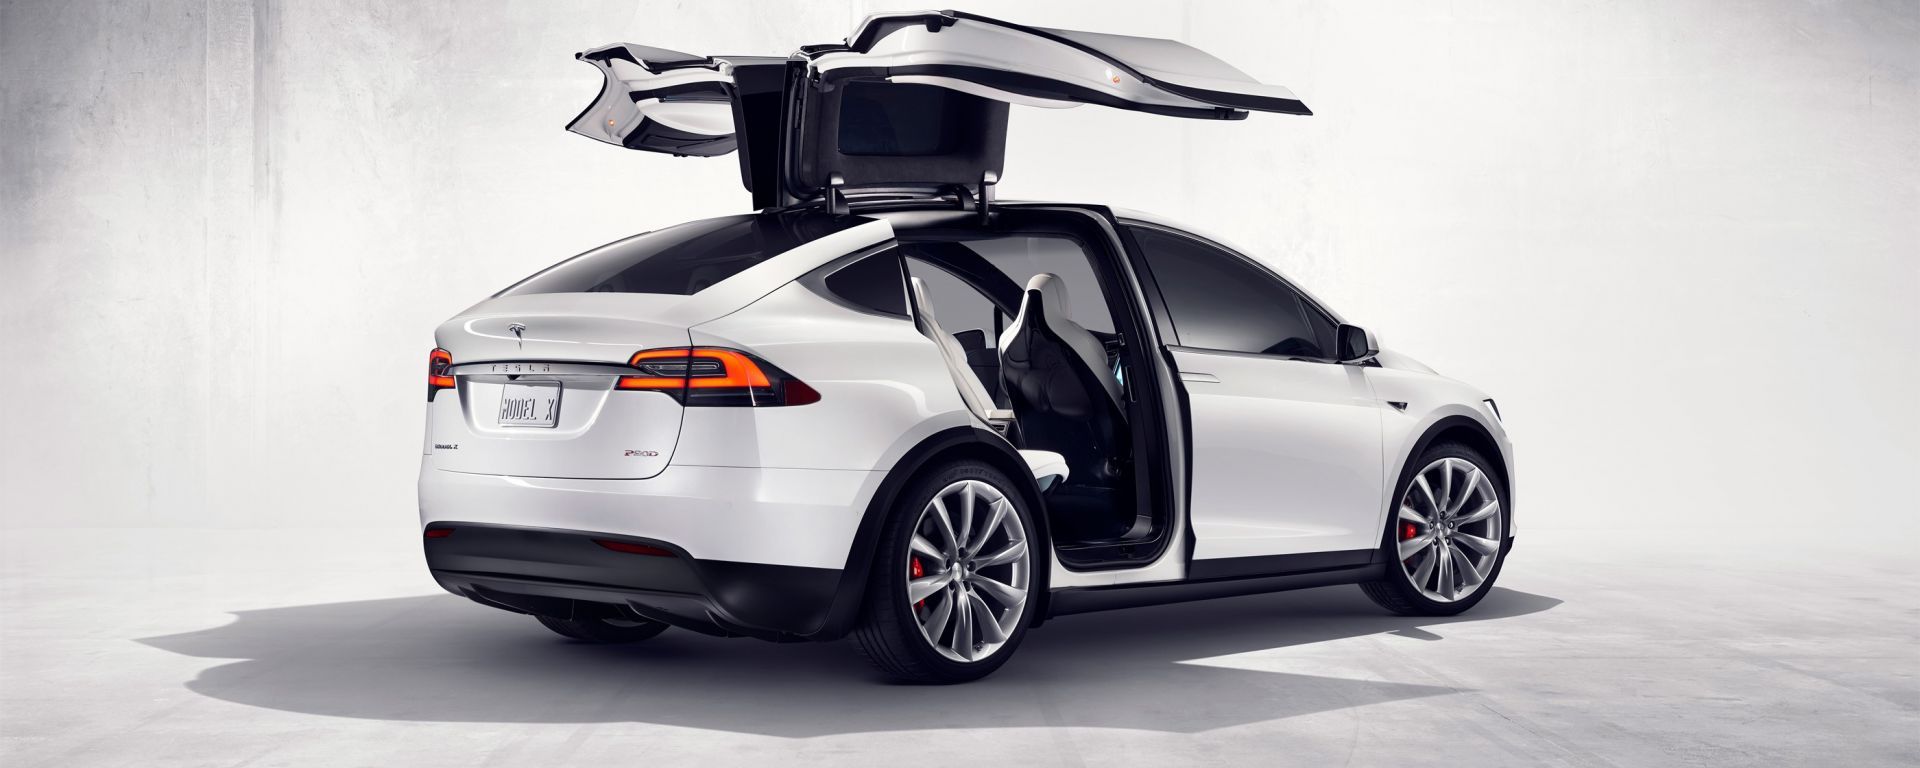 Tesla Model X: portiere e pilota automatico sotto accusa in California